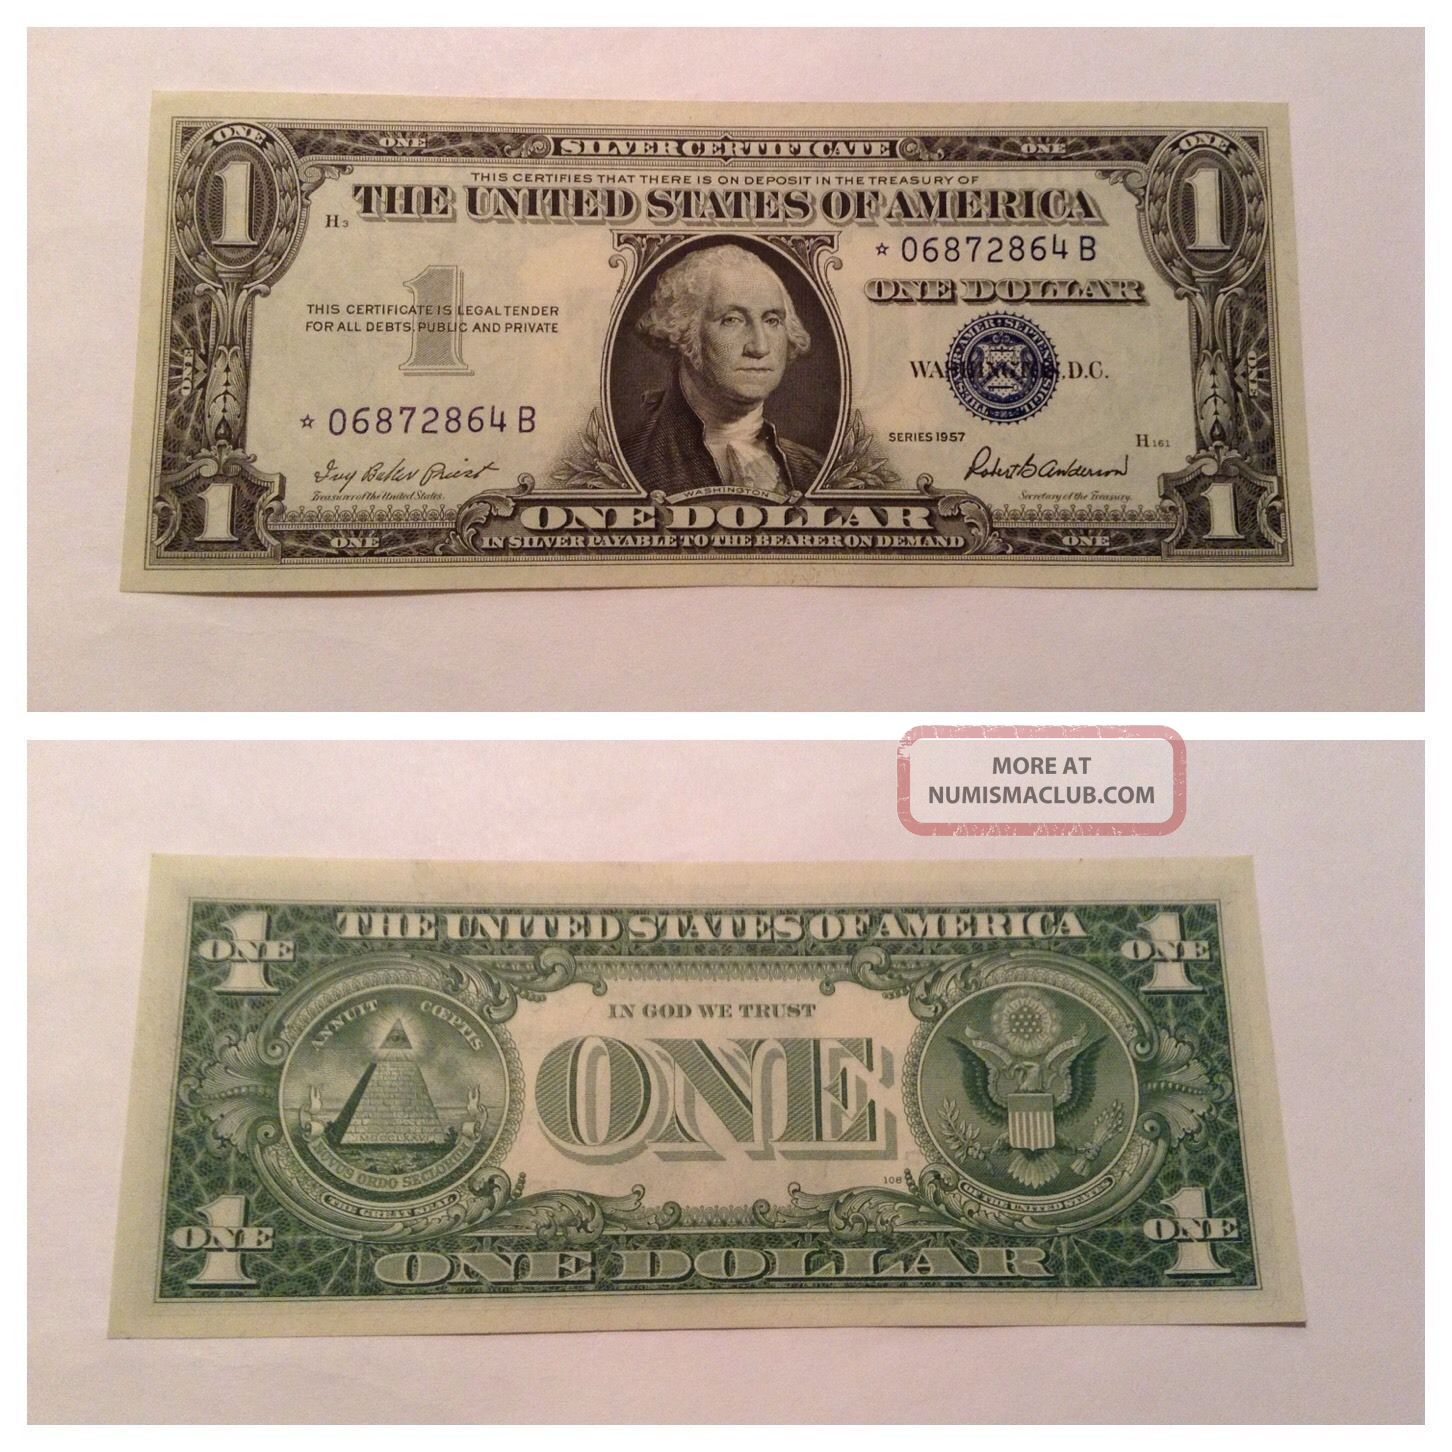 Vintage Uncirculated 1957 Star $1 Silver Certificate One Dollar Bill Washington Small Size Notes photo